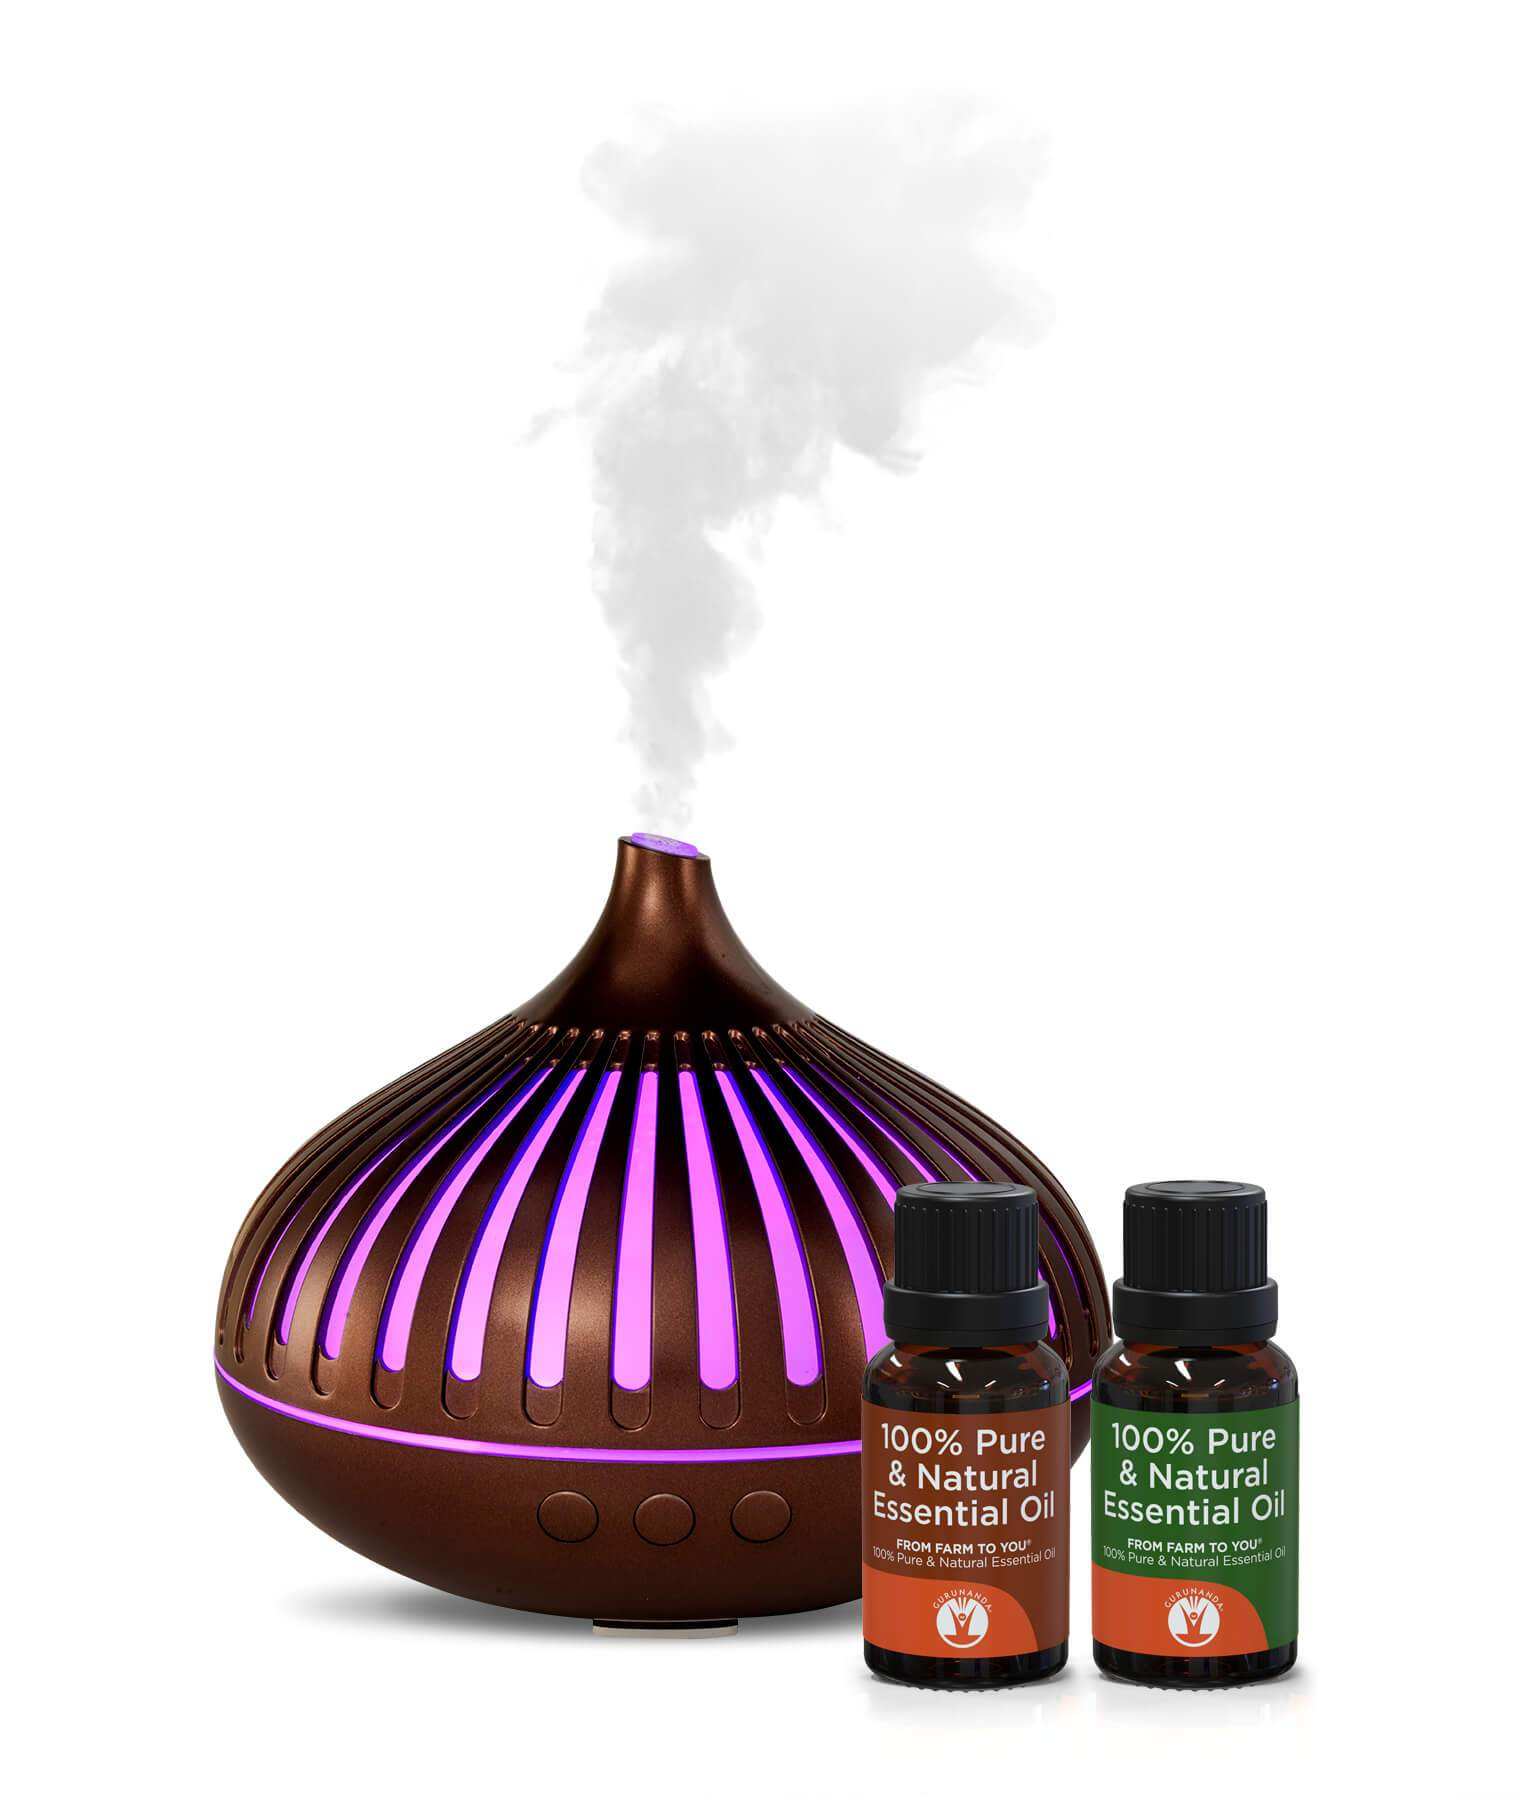 Festival Diffuser + 2 Bonus Oils - Best Ultrasonic Diffuser for Essential Oils - GuruNanda